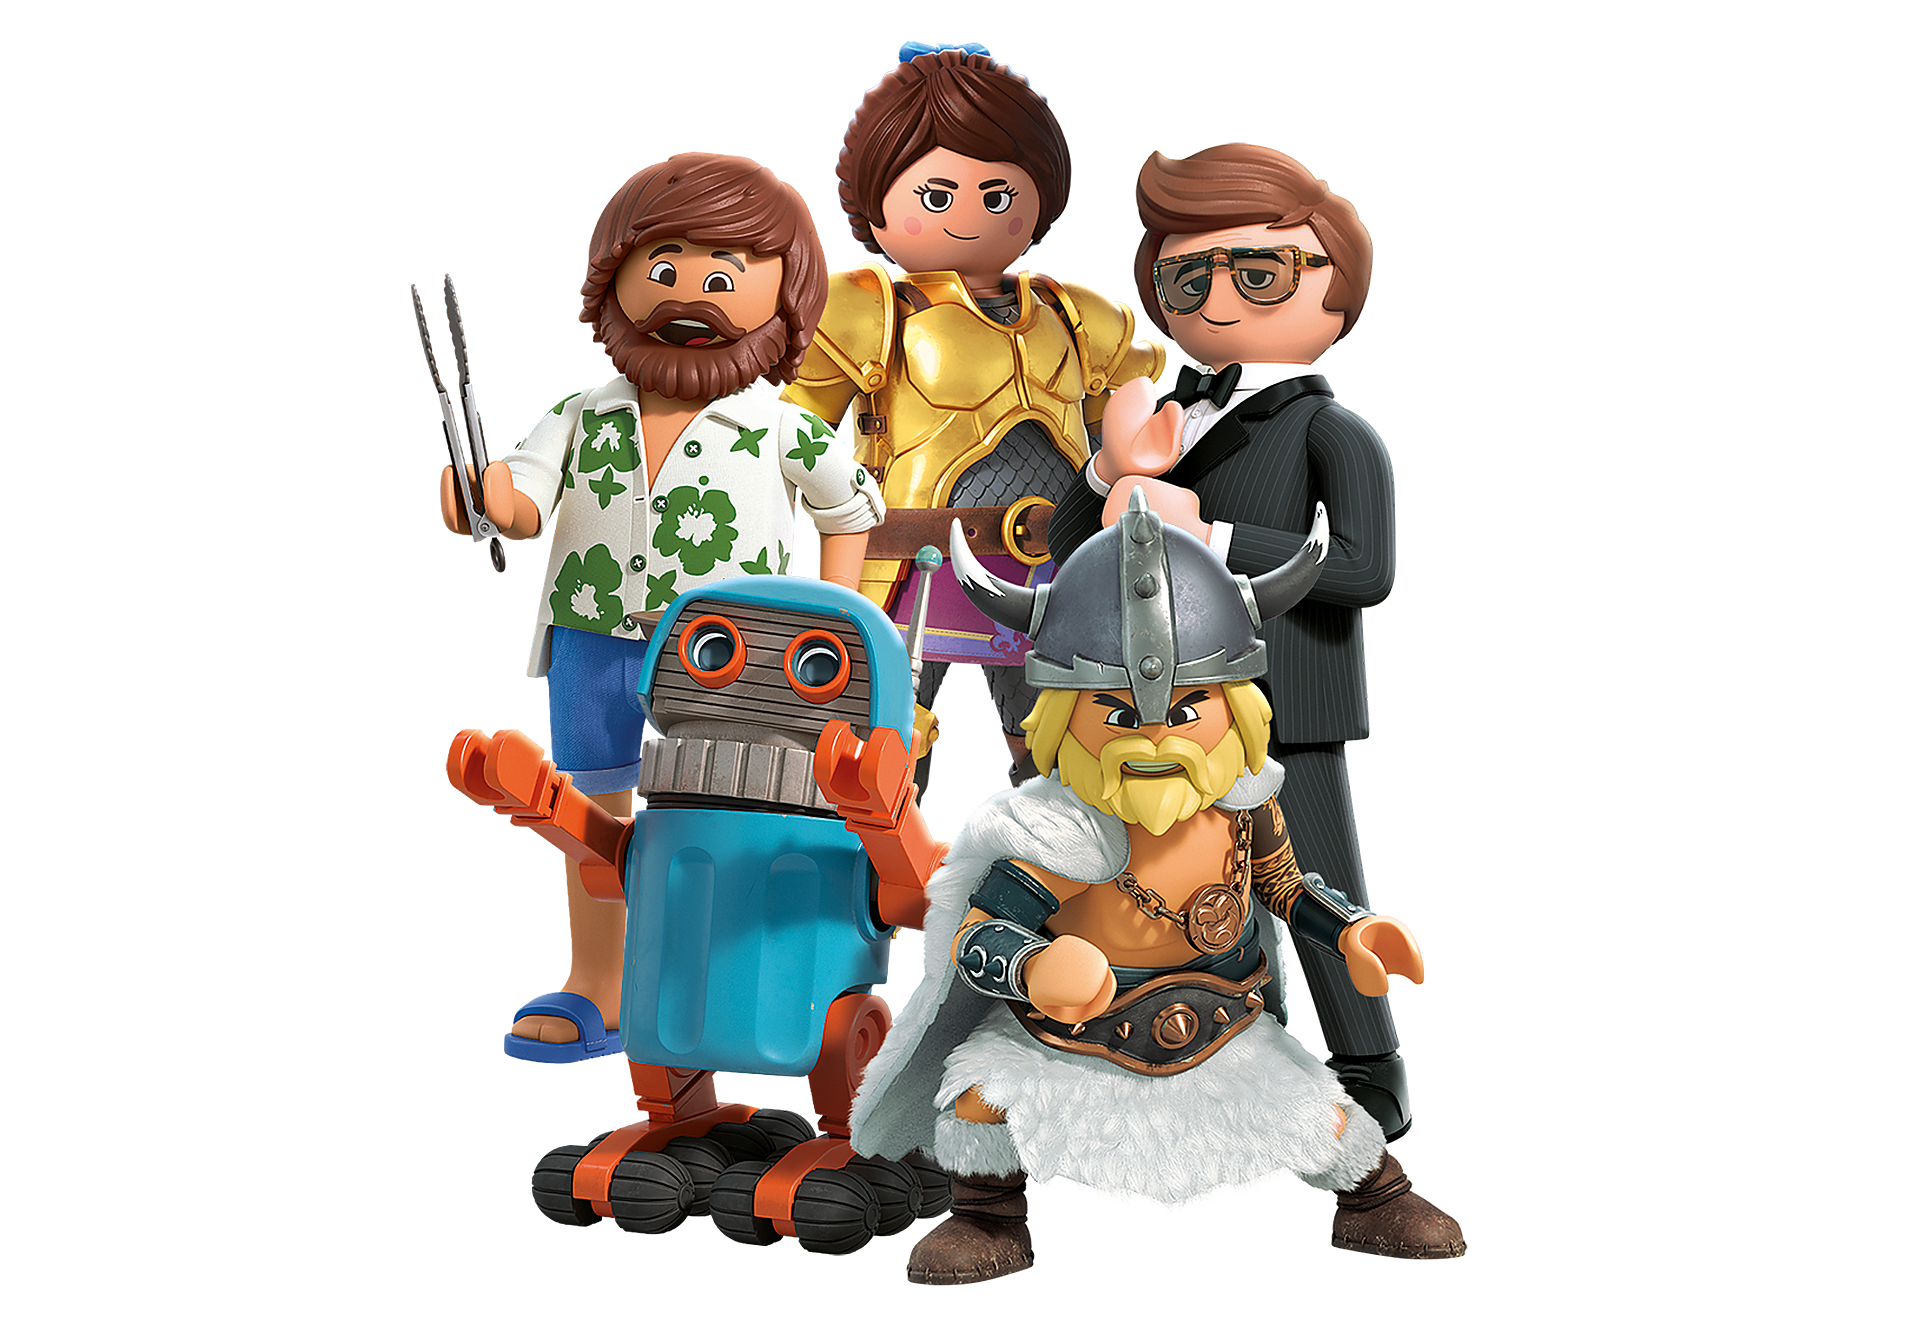 70069 PLAYMOBIL: THE MOVIE Figures (Serie 1) zoom image1